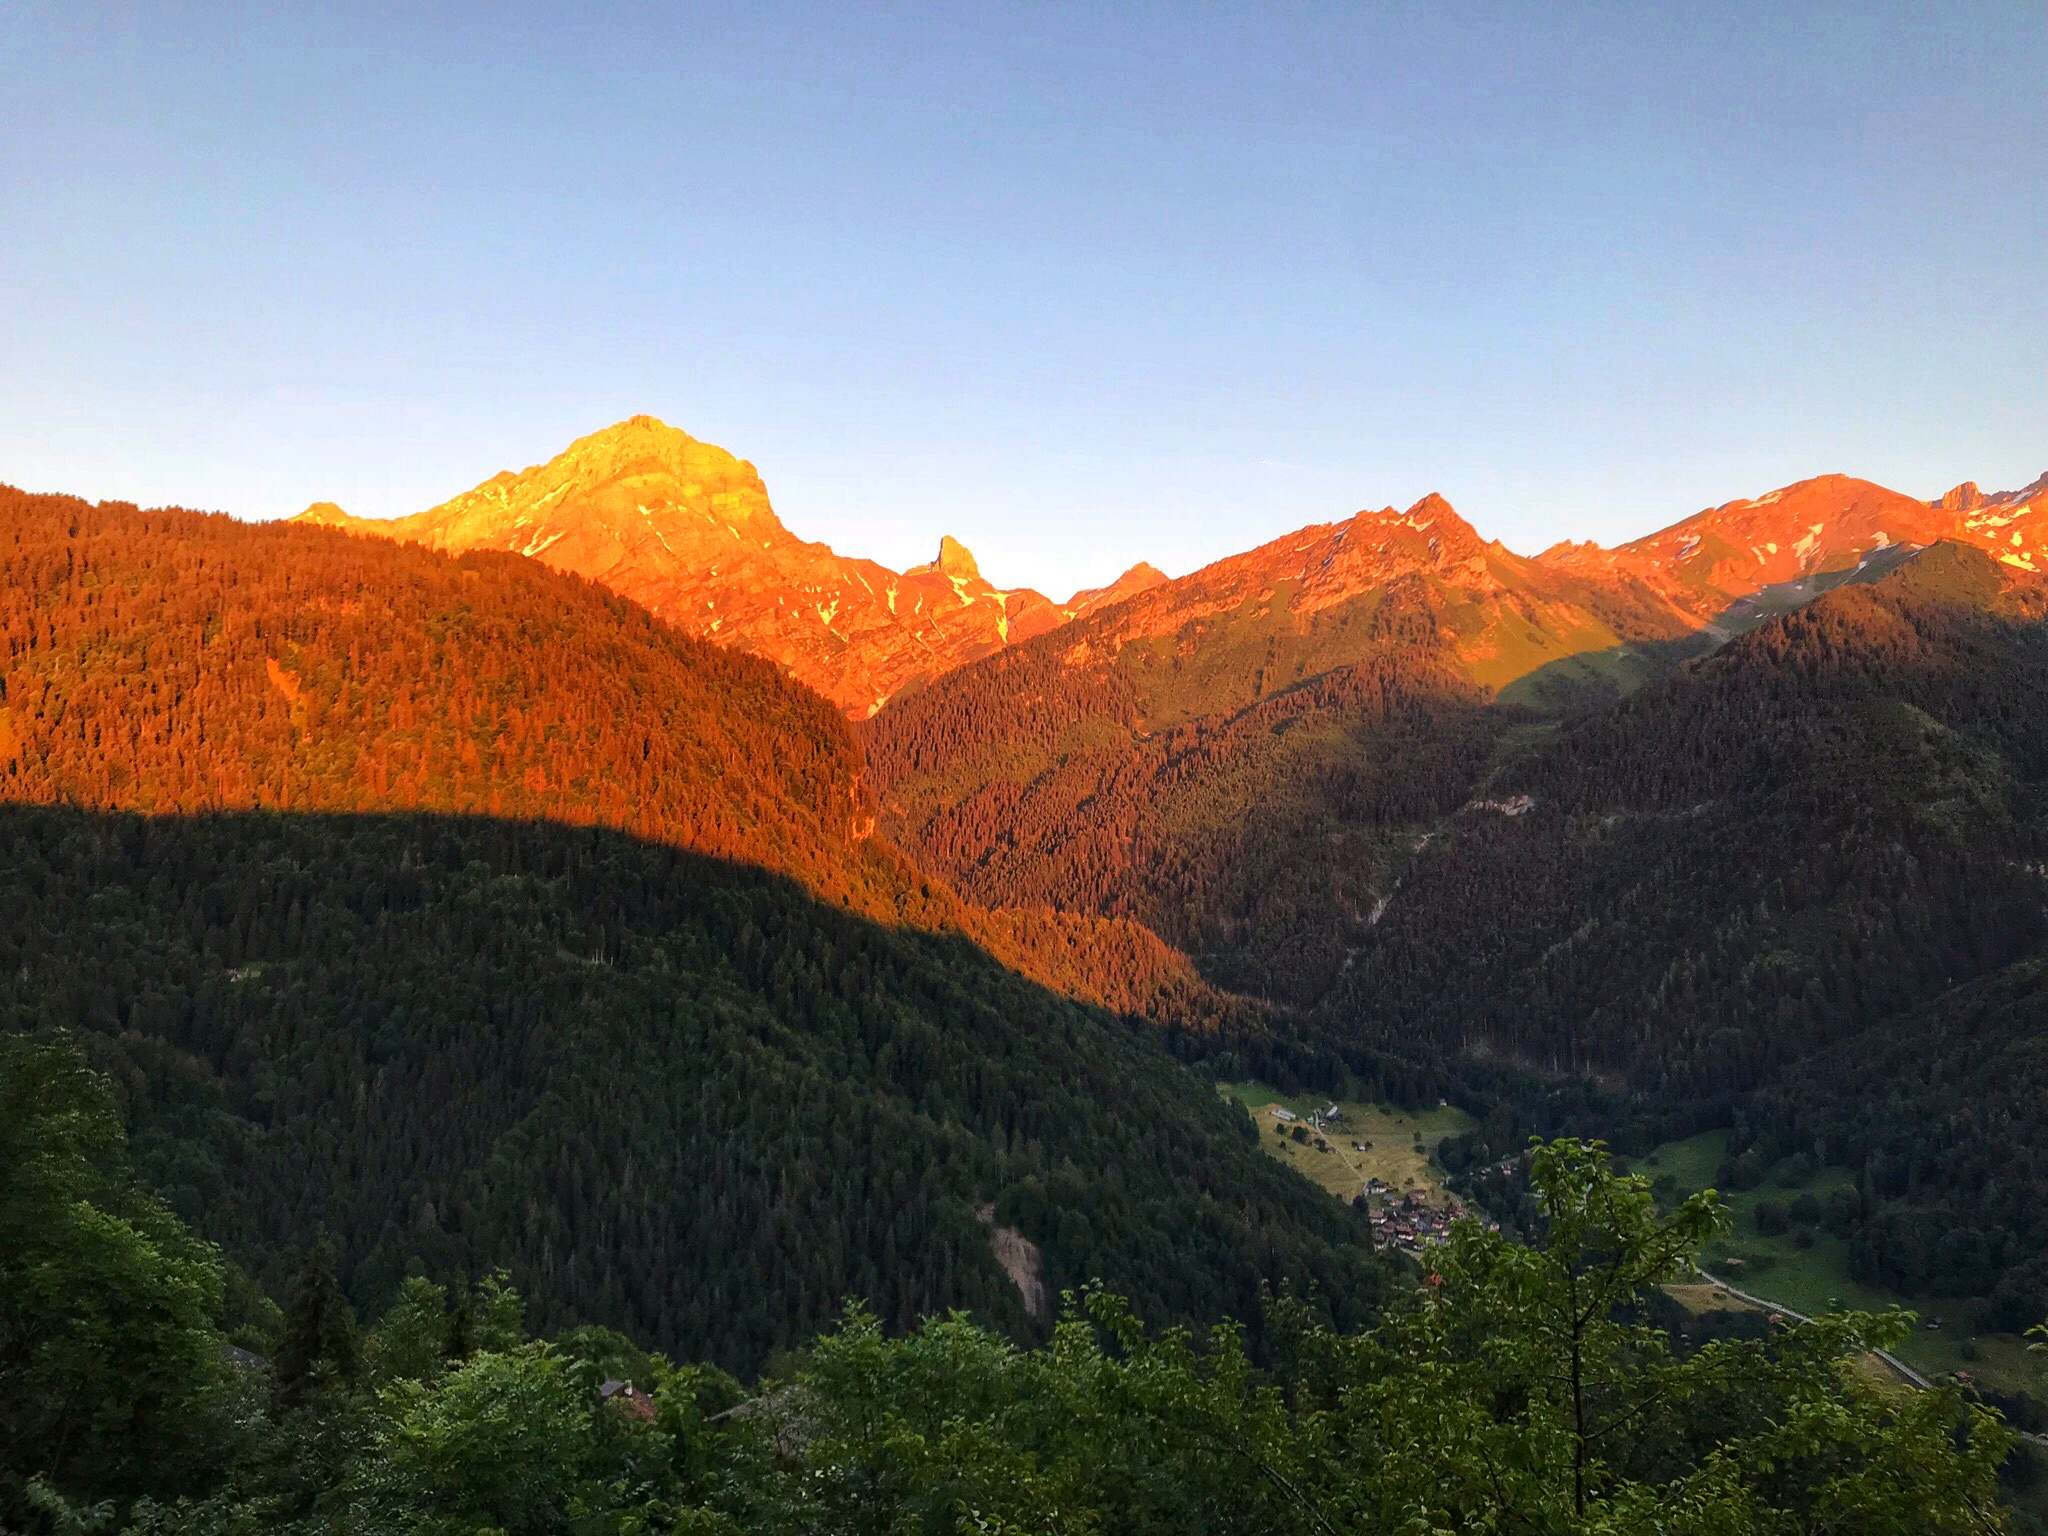 Sunset in the Swiss Alps as seen from Chalet Martin.